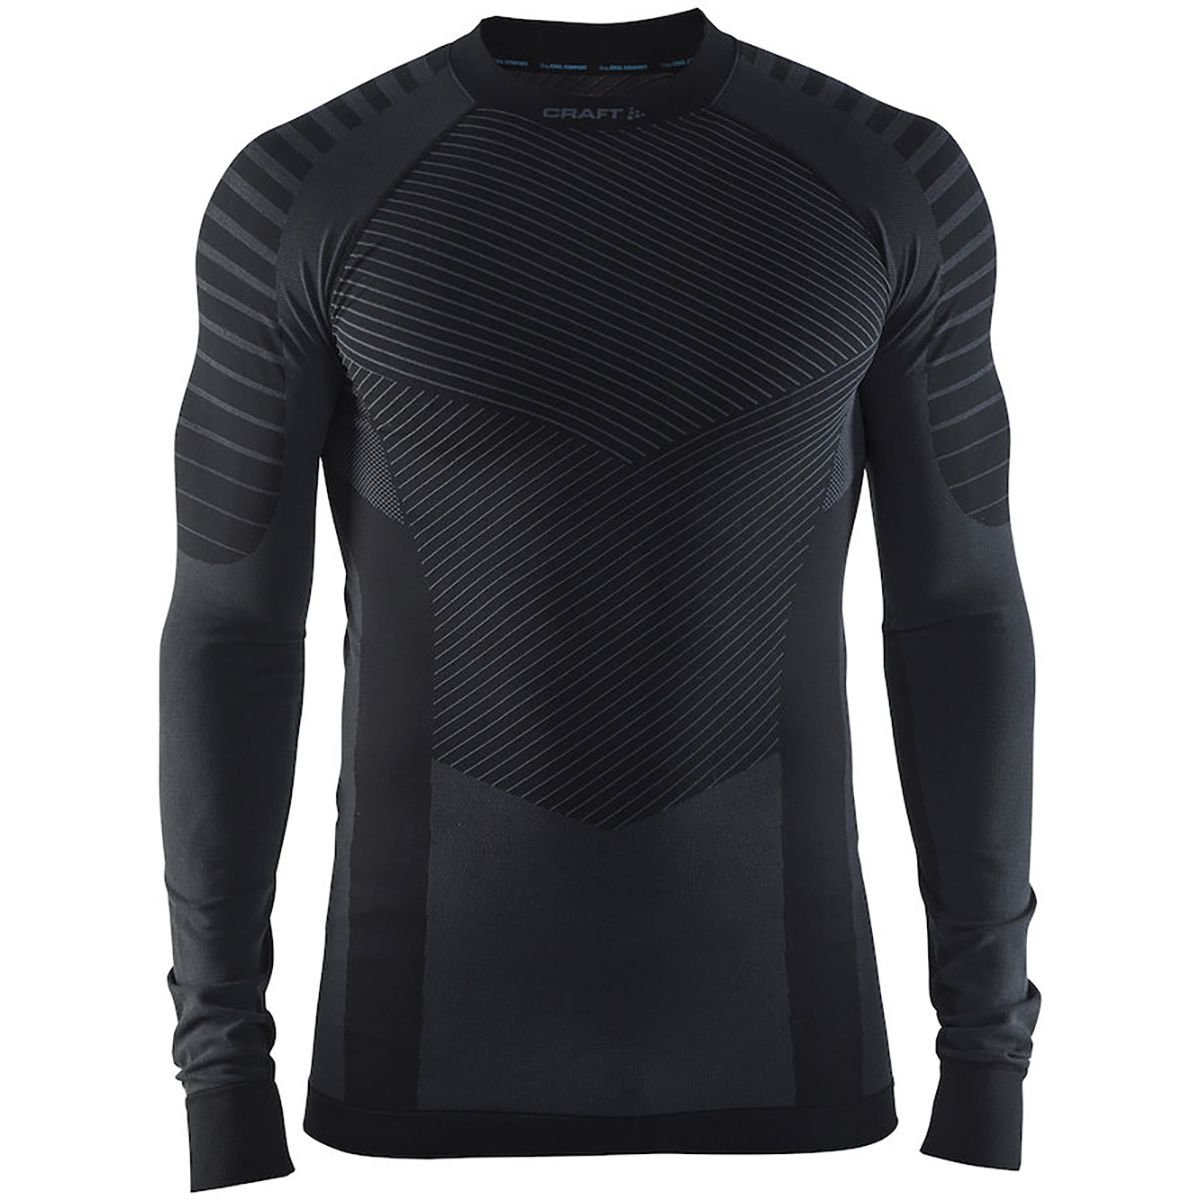 Craft Sportswear Men's Active Intensity Running and Training Fitness Workout Outdoor Sport Base Layer Long Sleeve Shirt: wicking/cooling/aerobics/sport/athletic/underwear/top, Black/Granite, Small